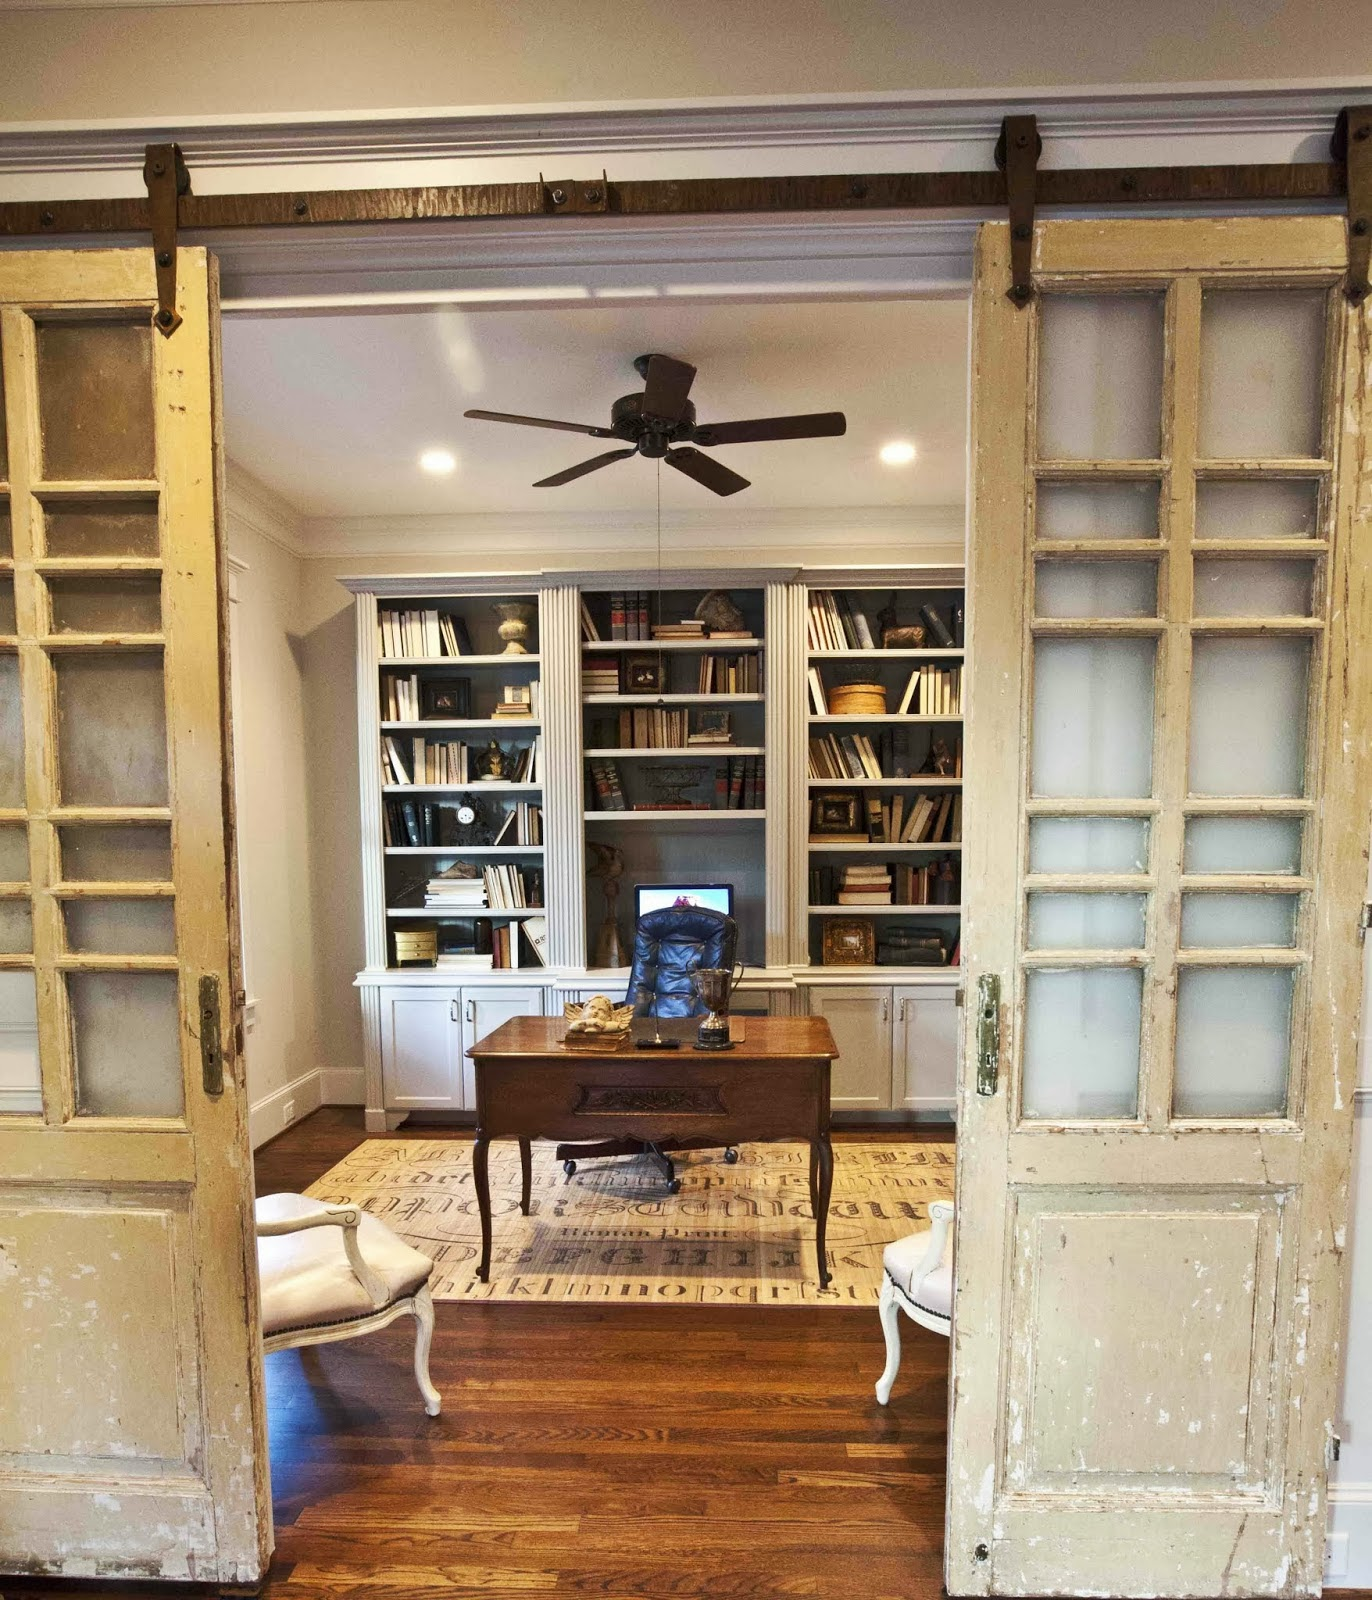 Distressed barn doors slide away to reveal a beautiful study with wood floors and a small, antique looking desk.